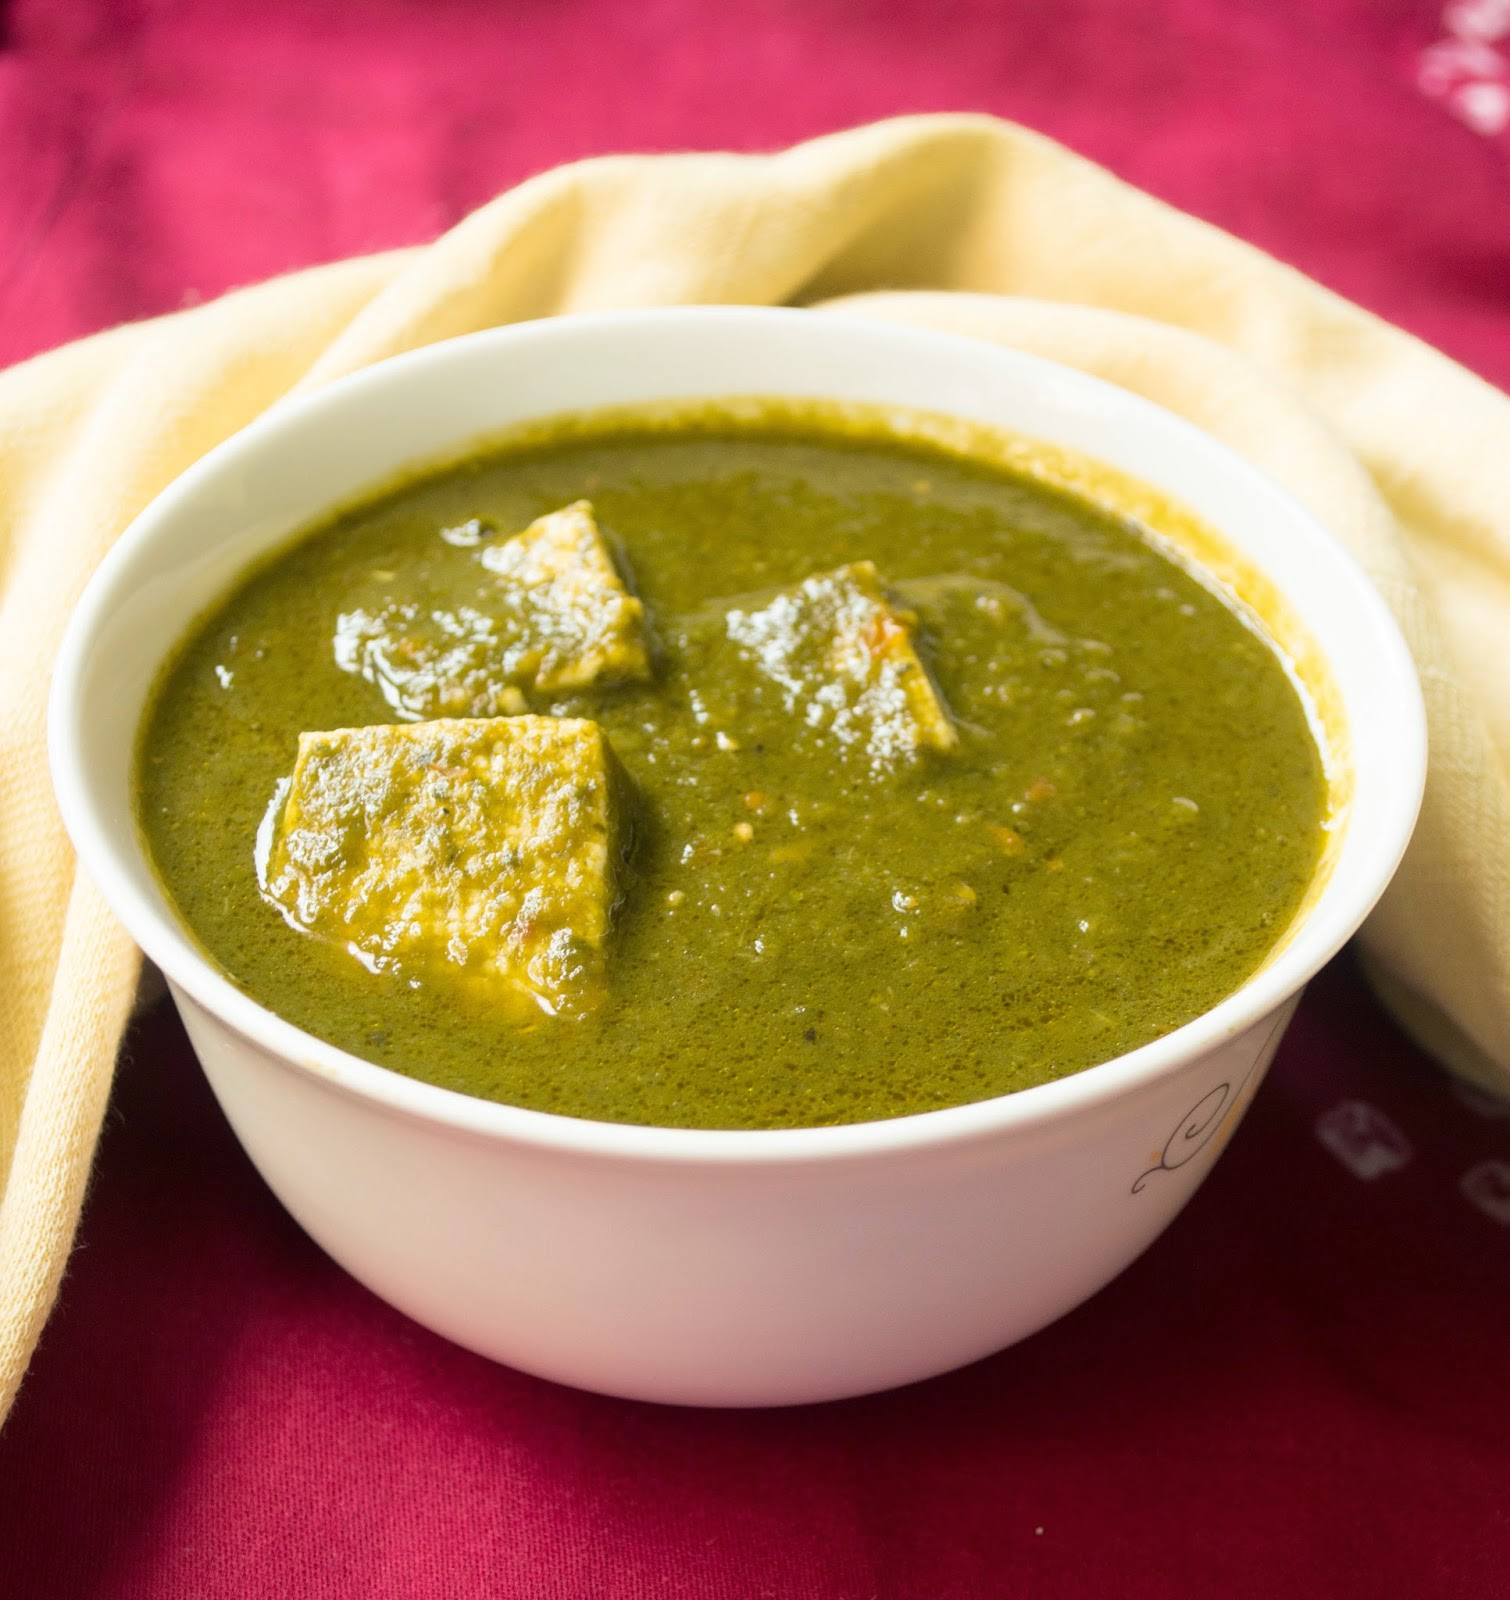 Palak paneer / spinach curry with cottage cheese